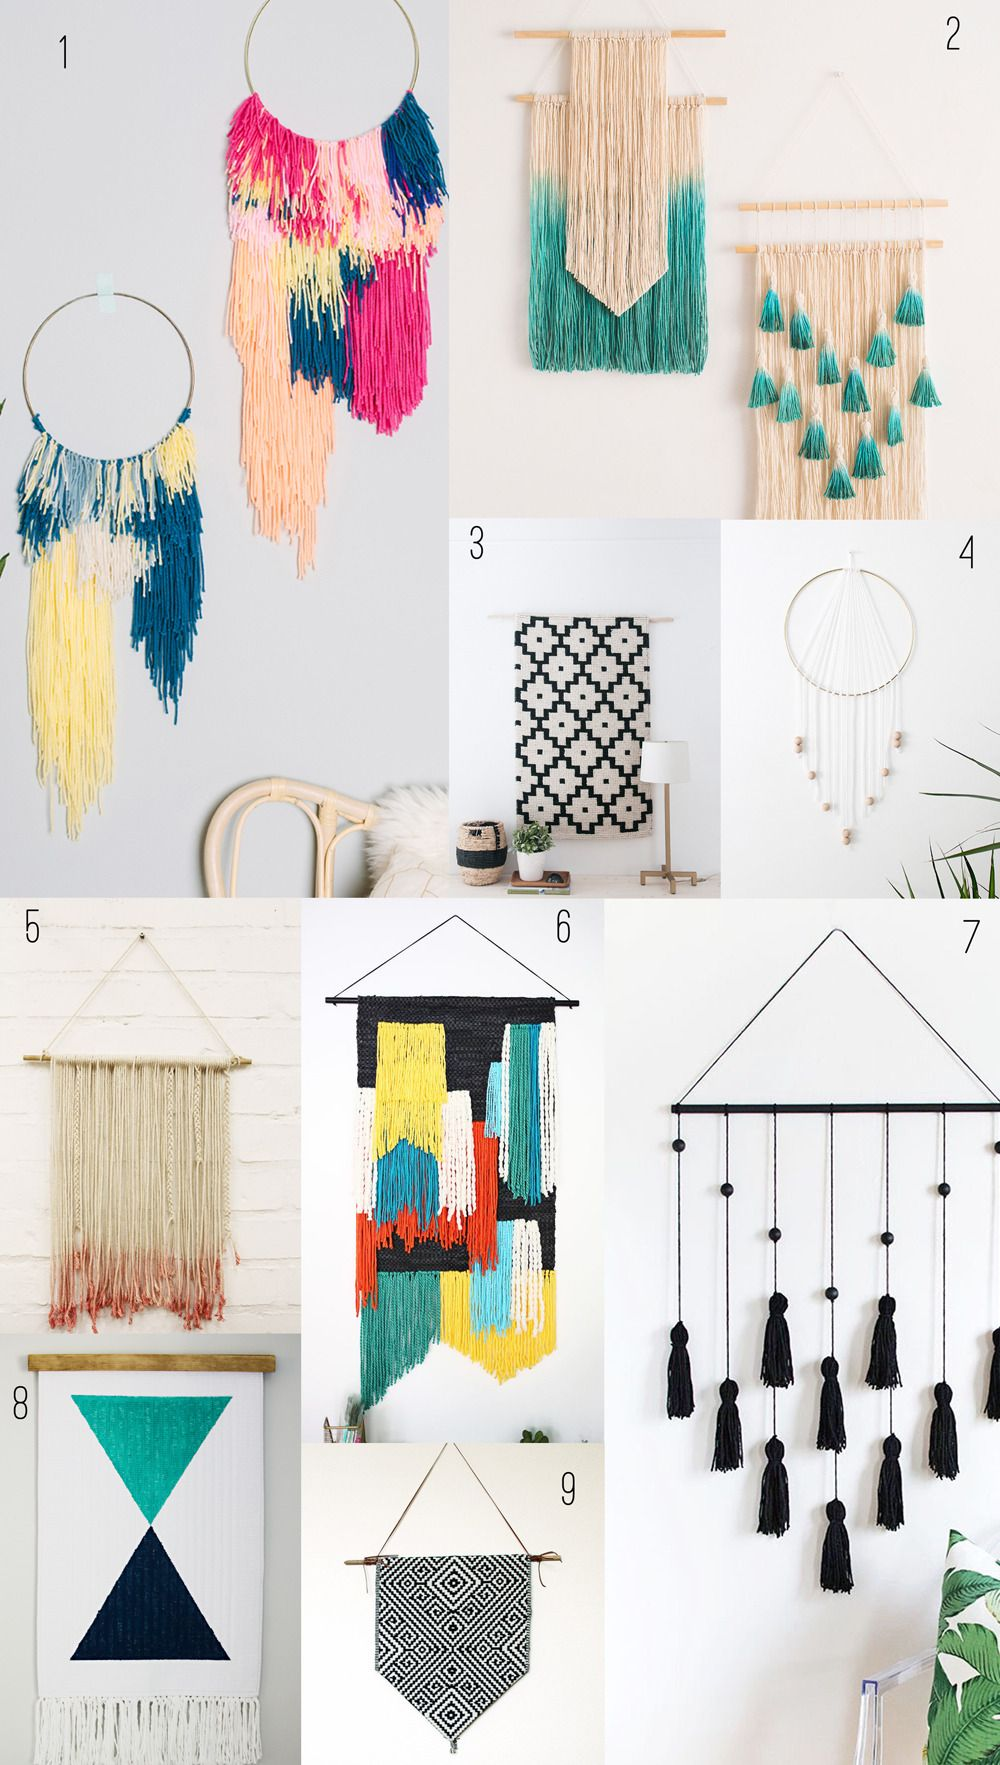 9 Amazing Diy Wall Hangings Tell Love And Party Tl P Has Rounded Up Some Amazing Diy Wall Hangings Here I Know Wall Hanging Diy Diy Wall Decor Diy Wall Art